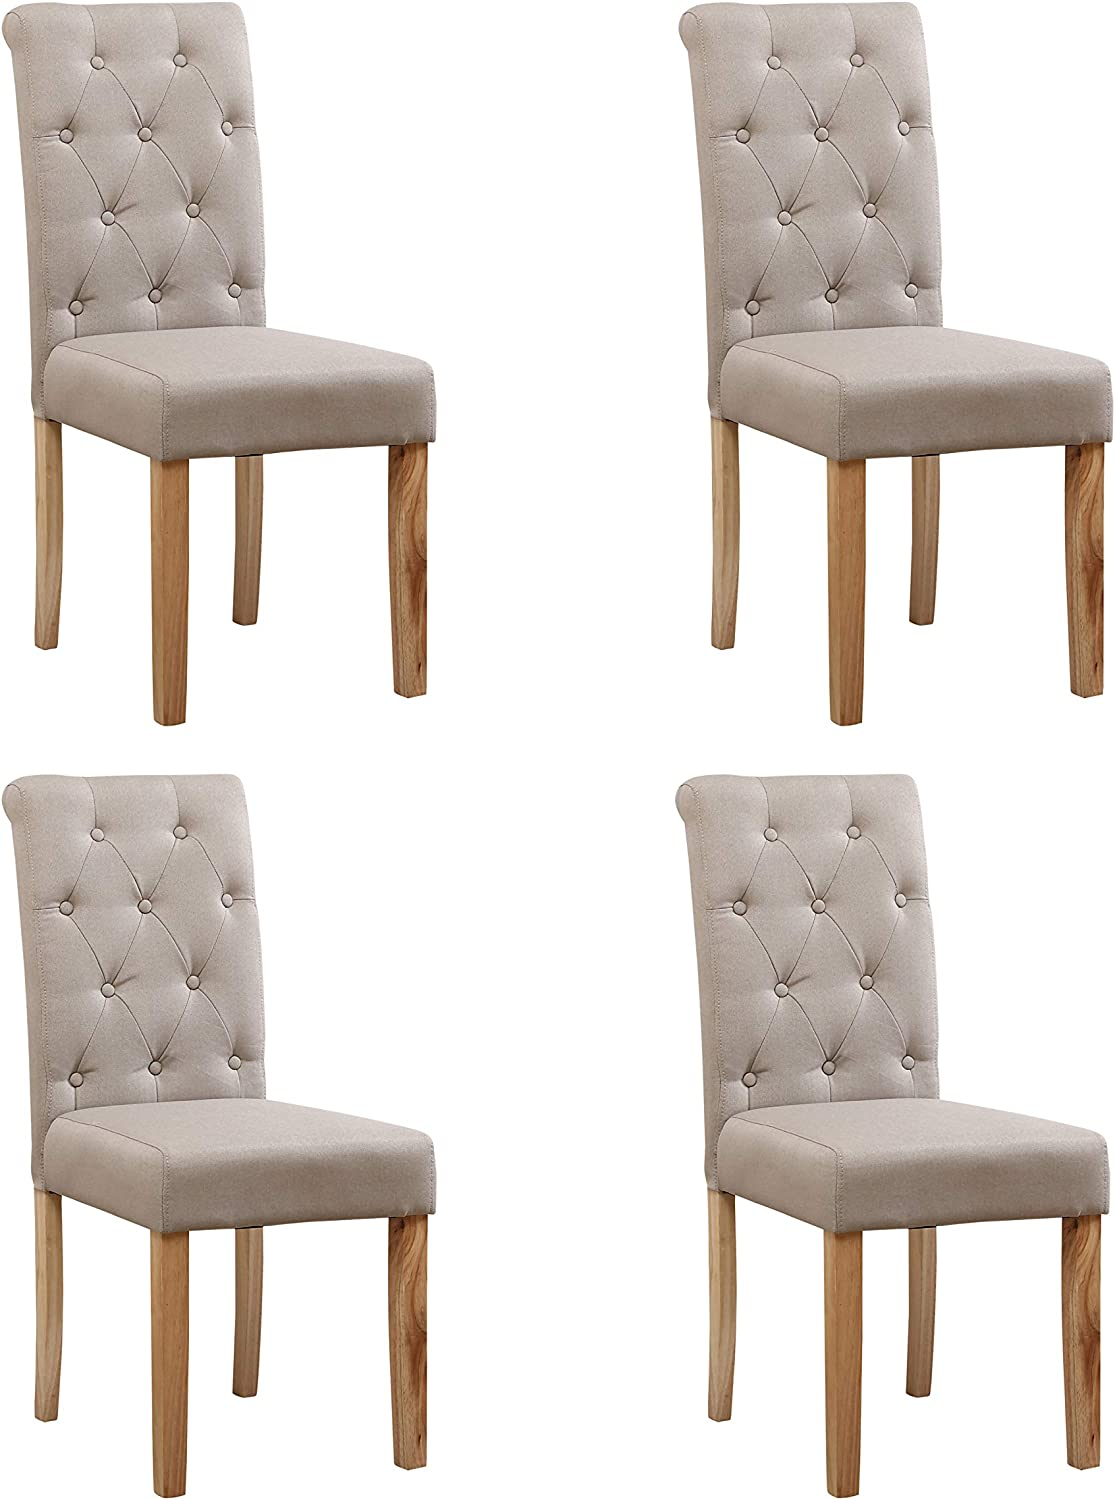 Neo® 4X Fabric Button High Back Roll Top Seat Dining Room Chairs Set Wooden Oak Legs (Cream)